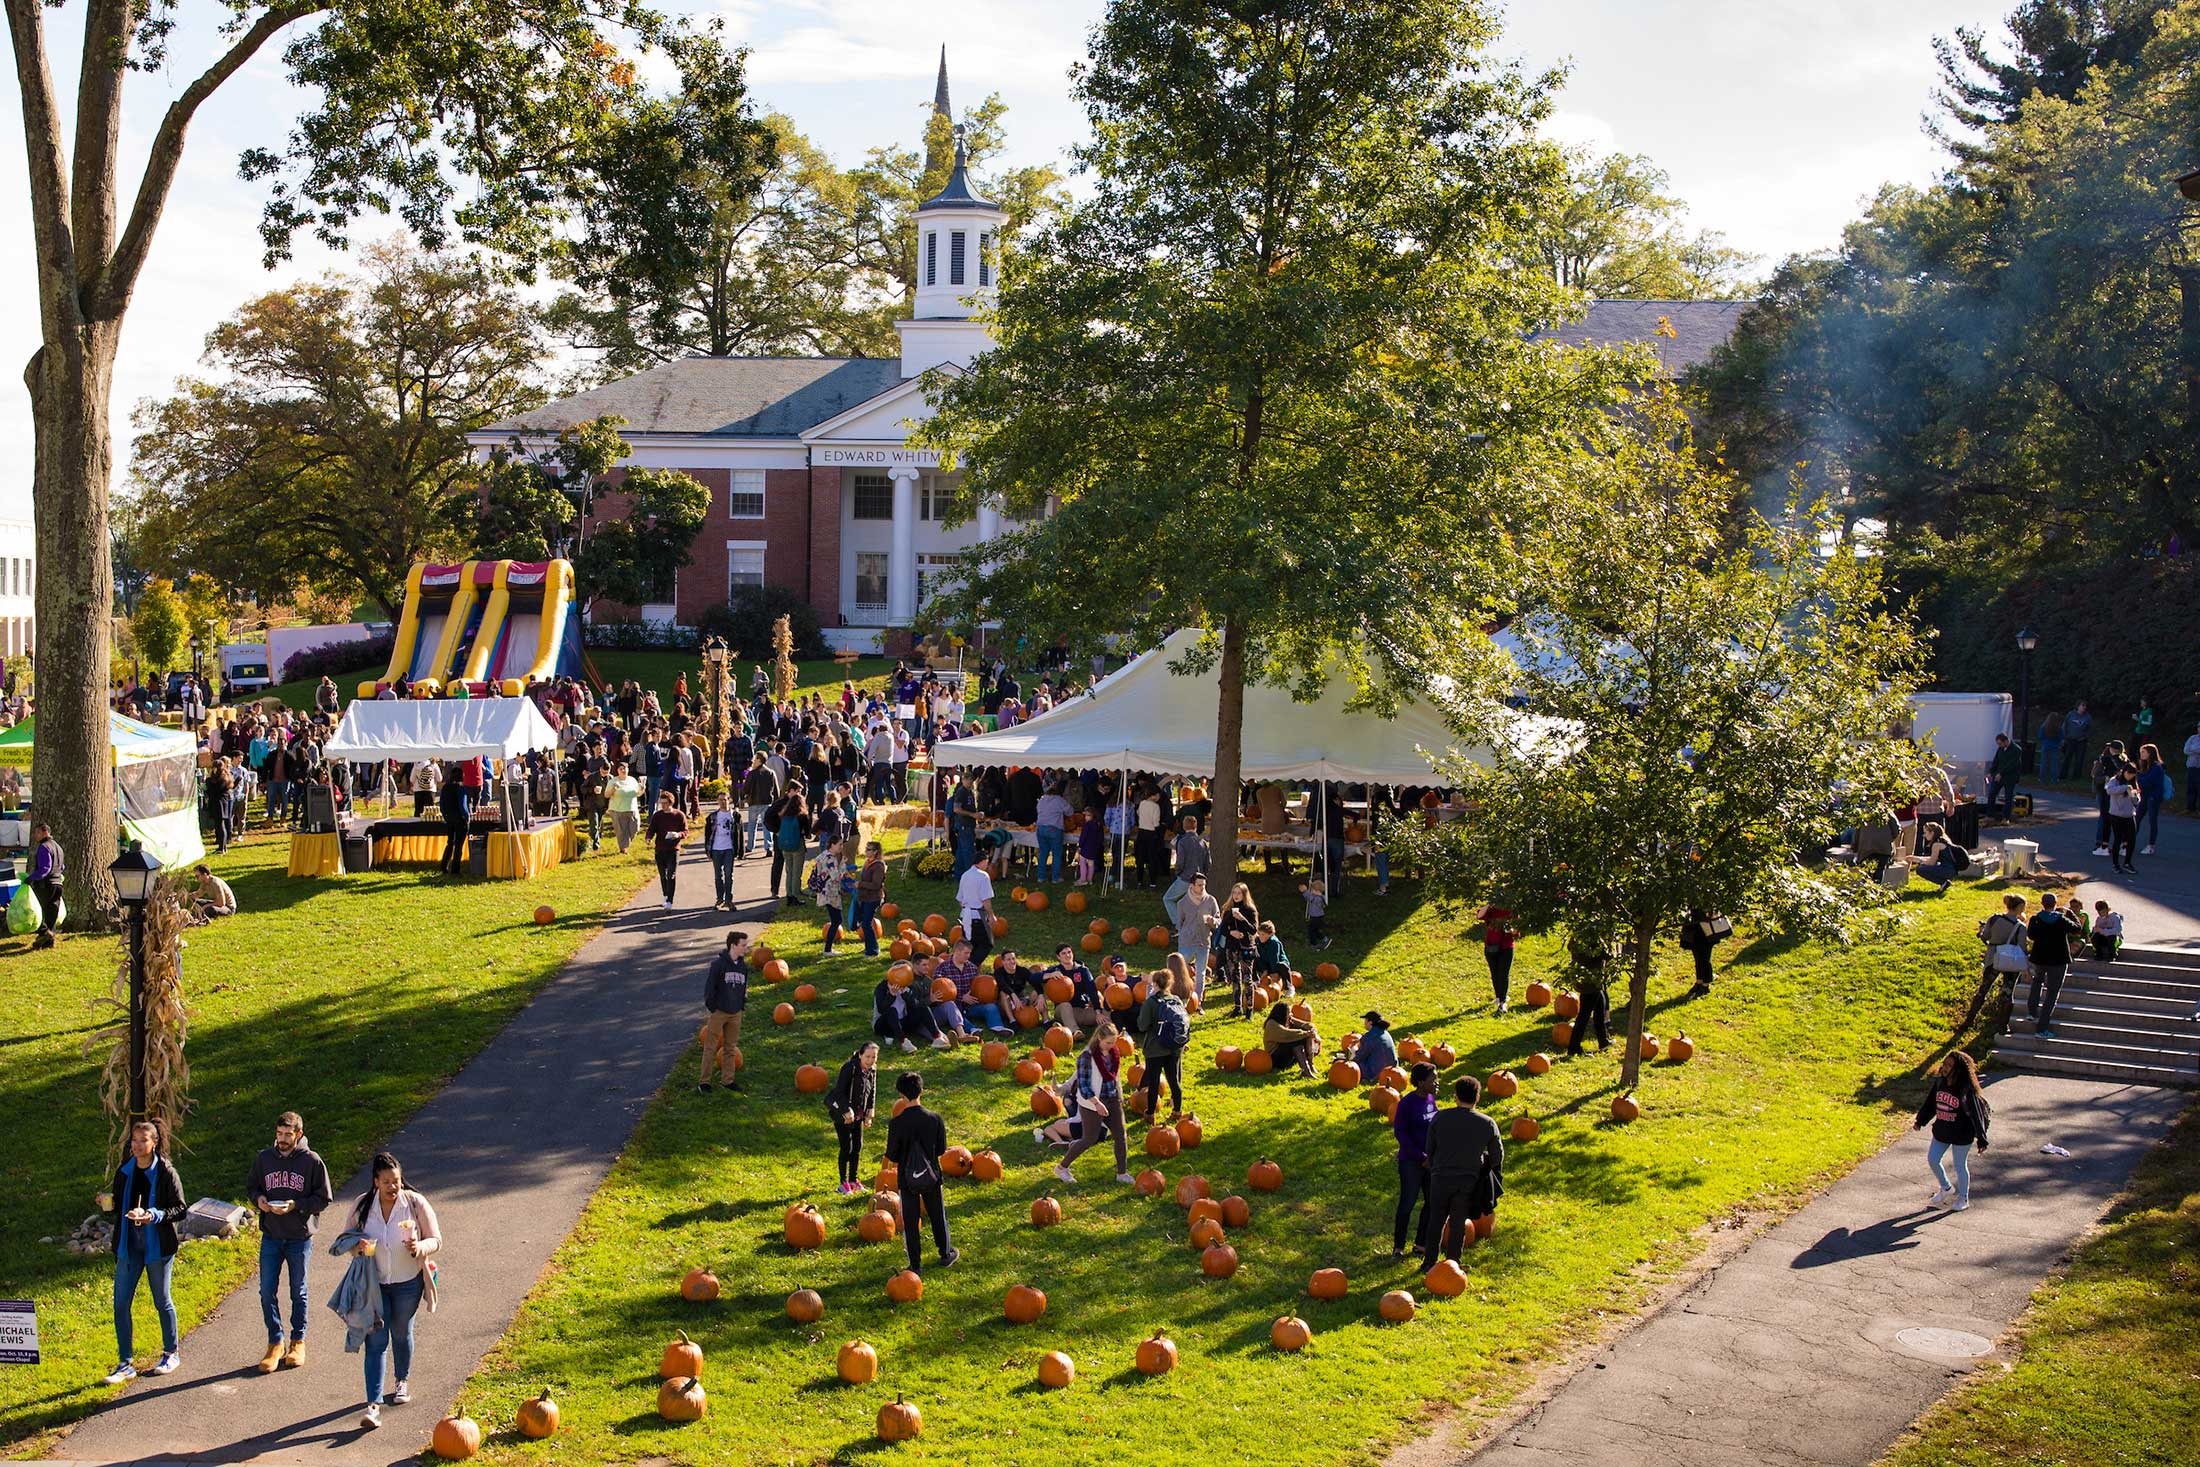 Visitors gather at the annual Fall Festival